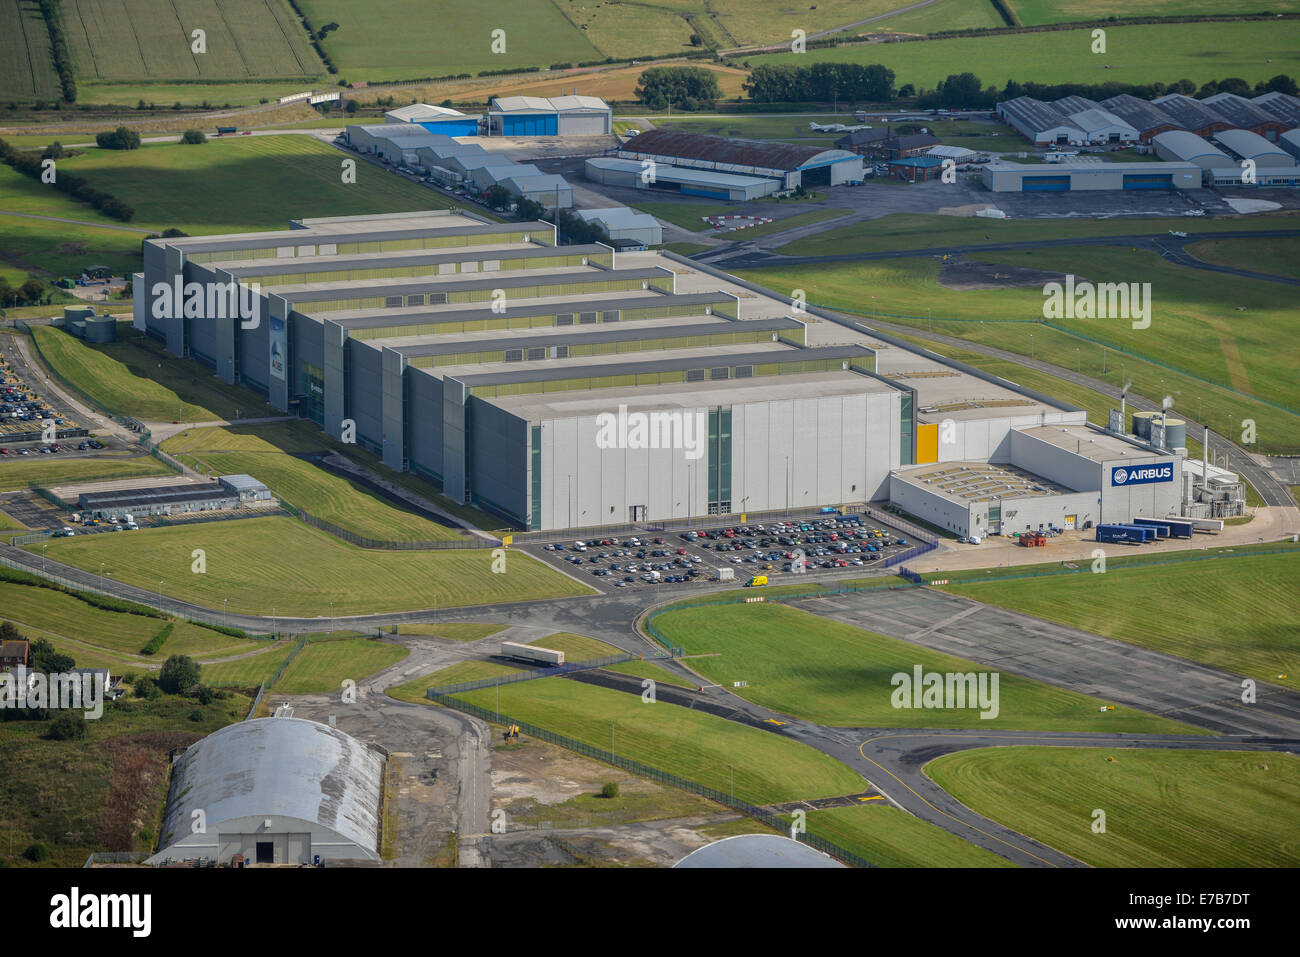 An aerial view showing the Airbus factory at Hawarden Airport, Cheshire UK - Stock Image